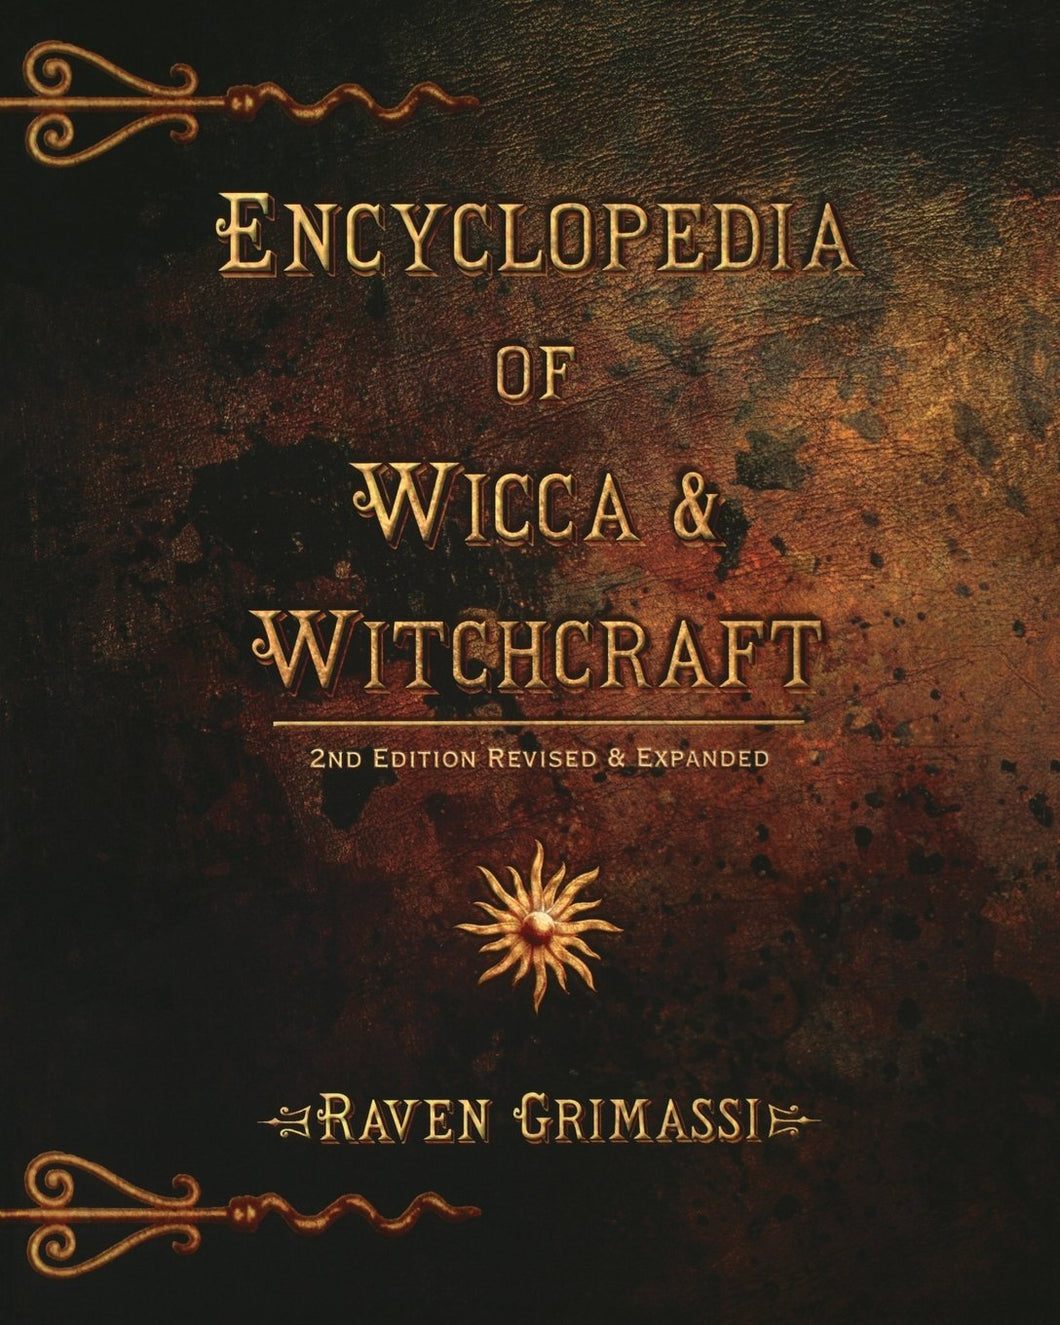 ENCYCLOPEDIA OF WICCA & WITCHCRAFT - Author: Grimassi, Raven